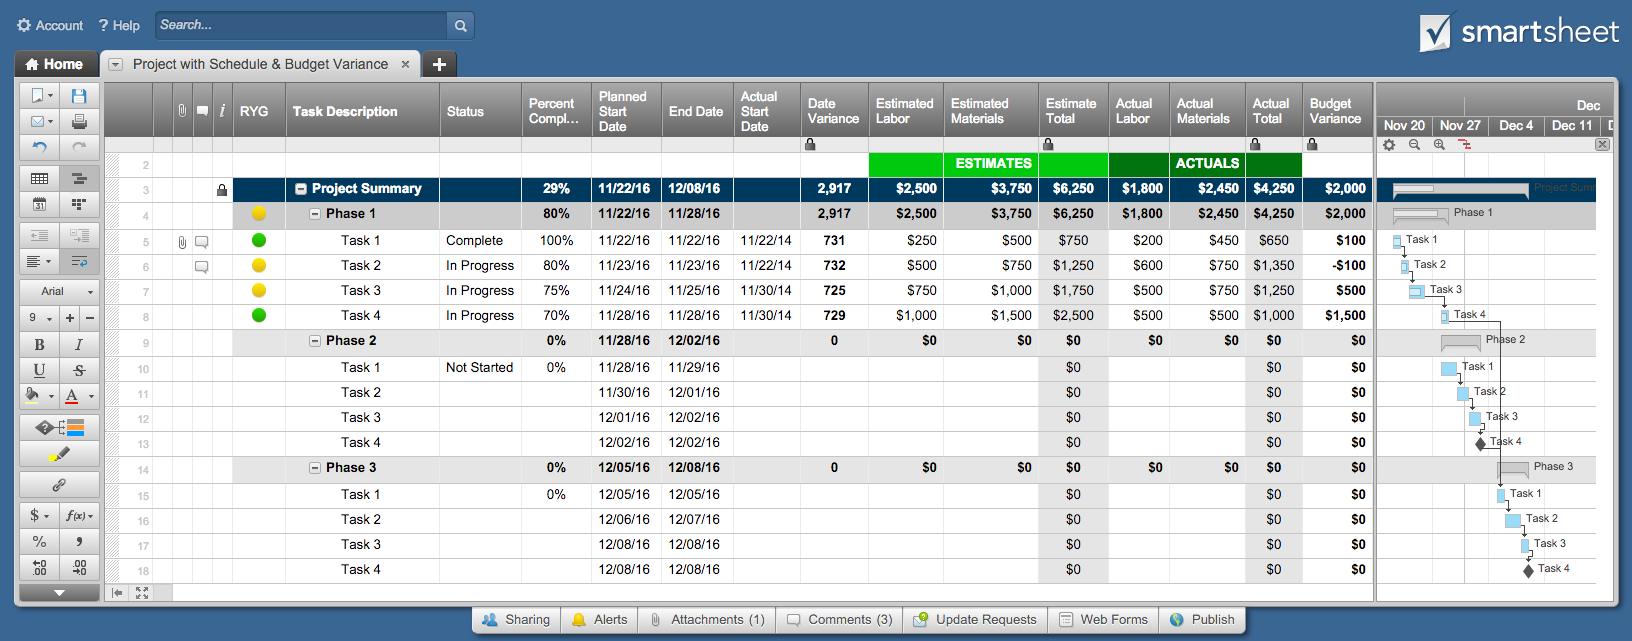 Free Excel Project Management Templates Throughout Project Management Templates Software